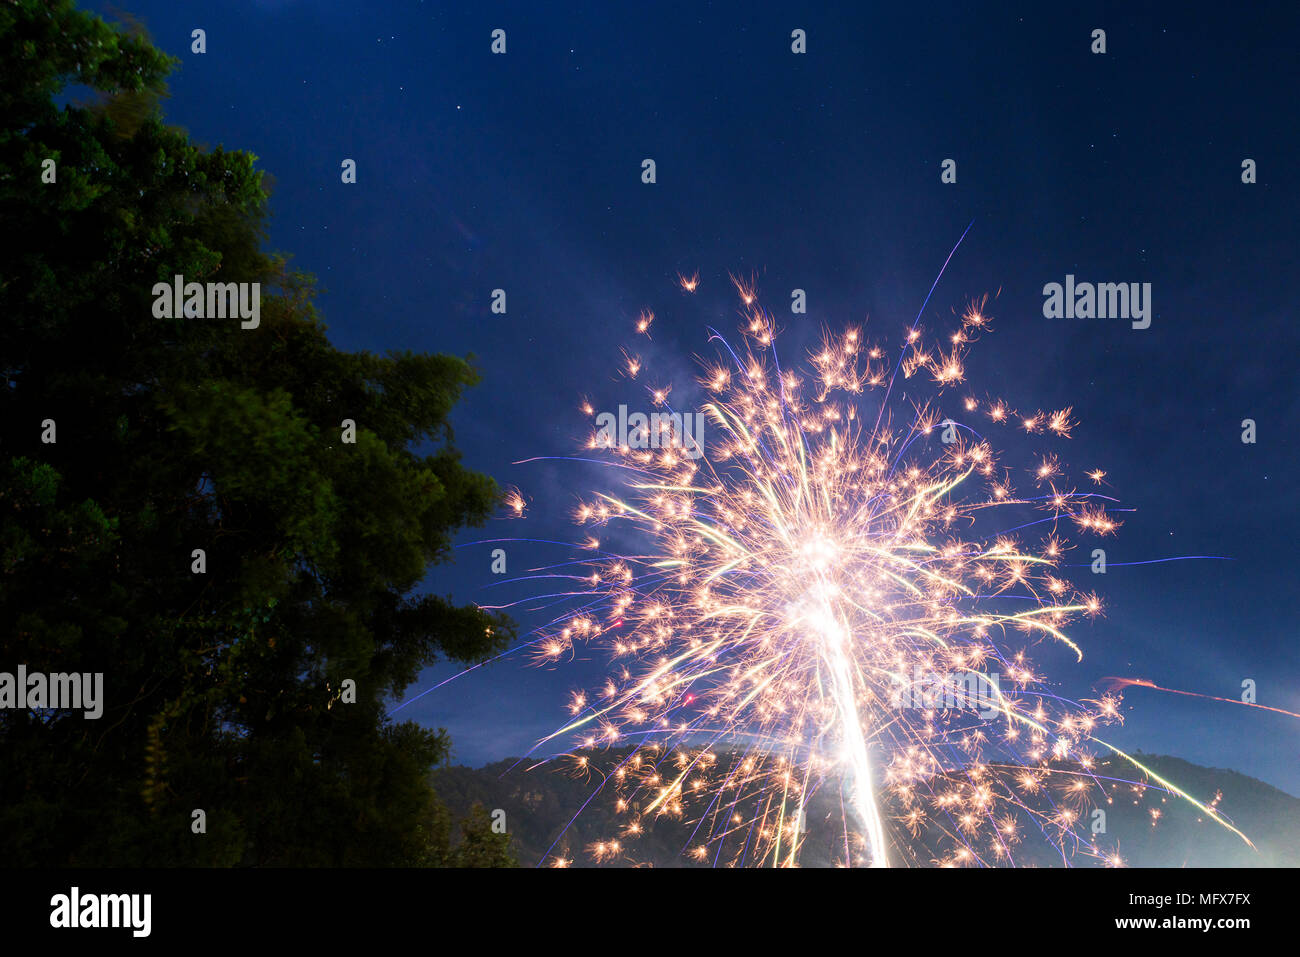 Fireworks light up the night sky on New Years Eve in Guatemala - Stock Image